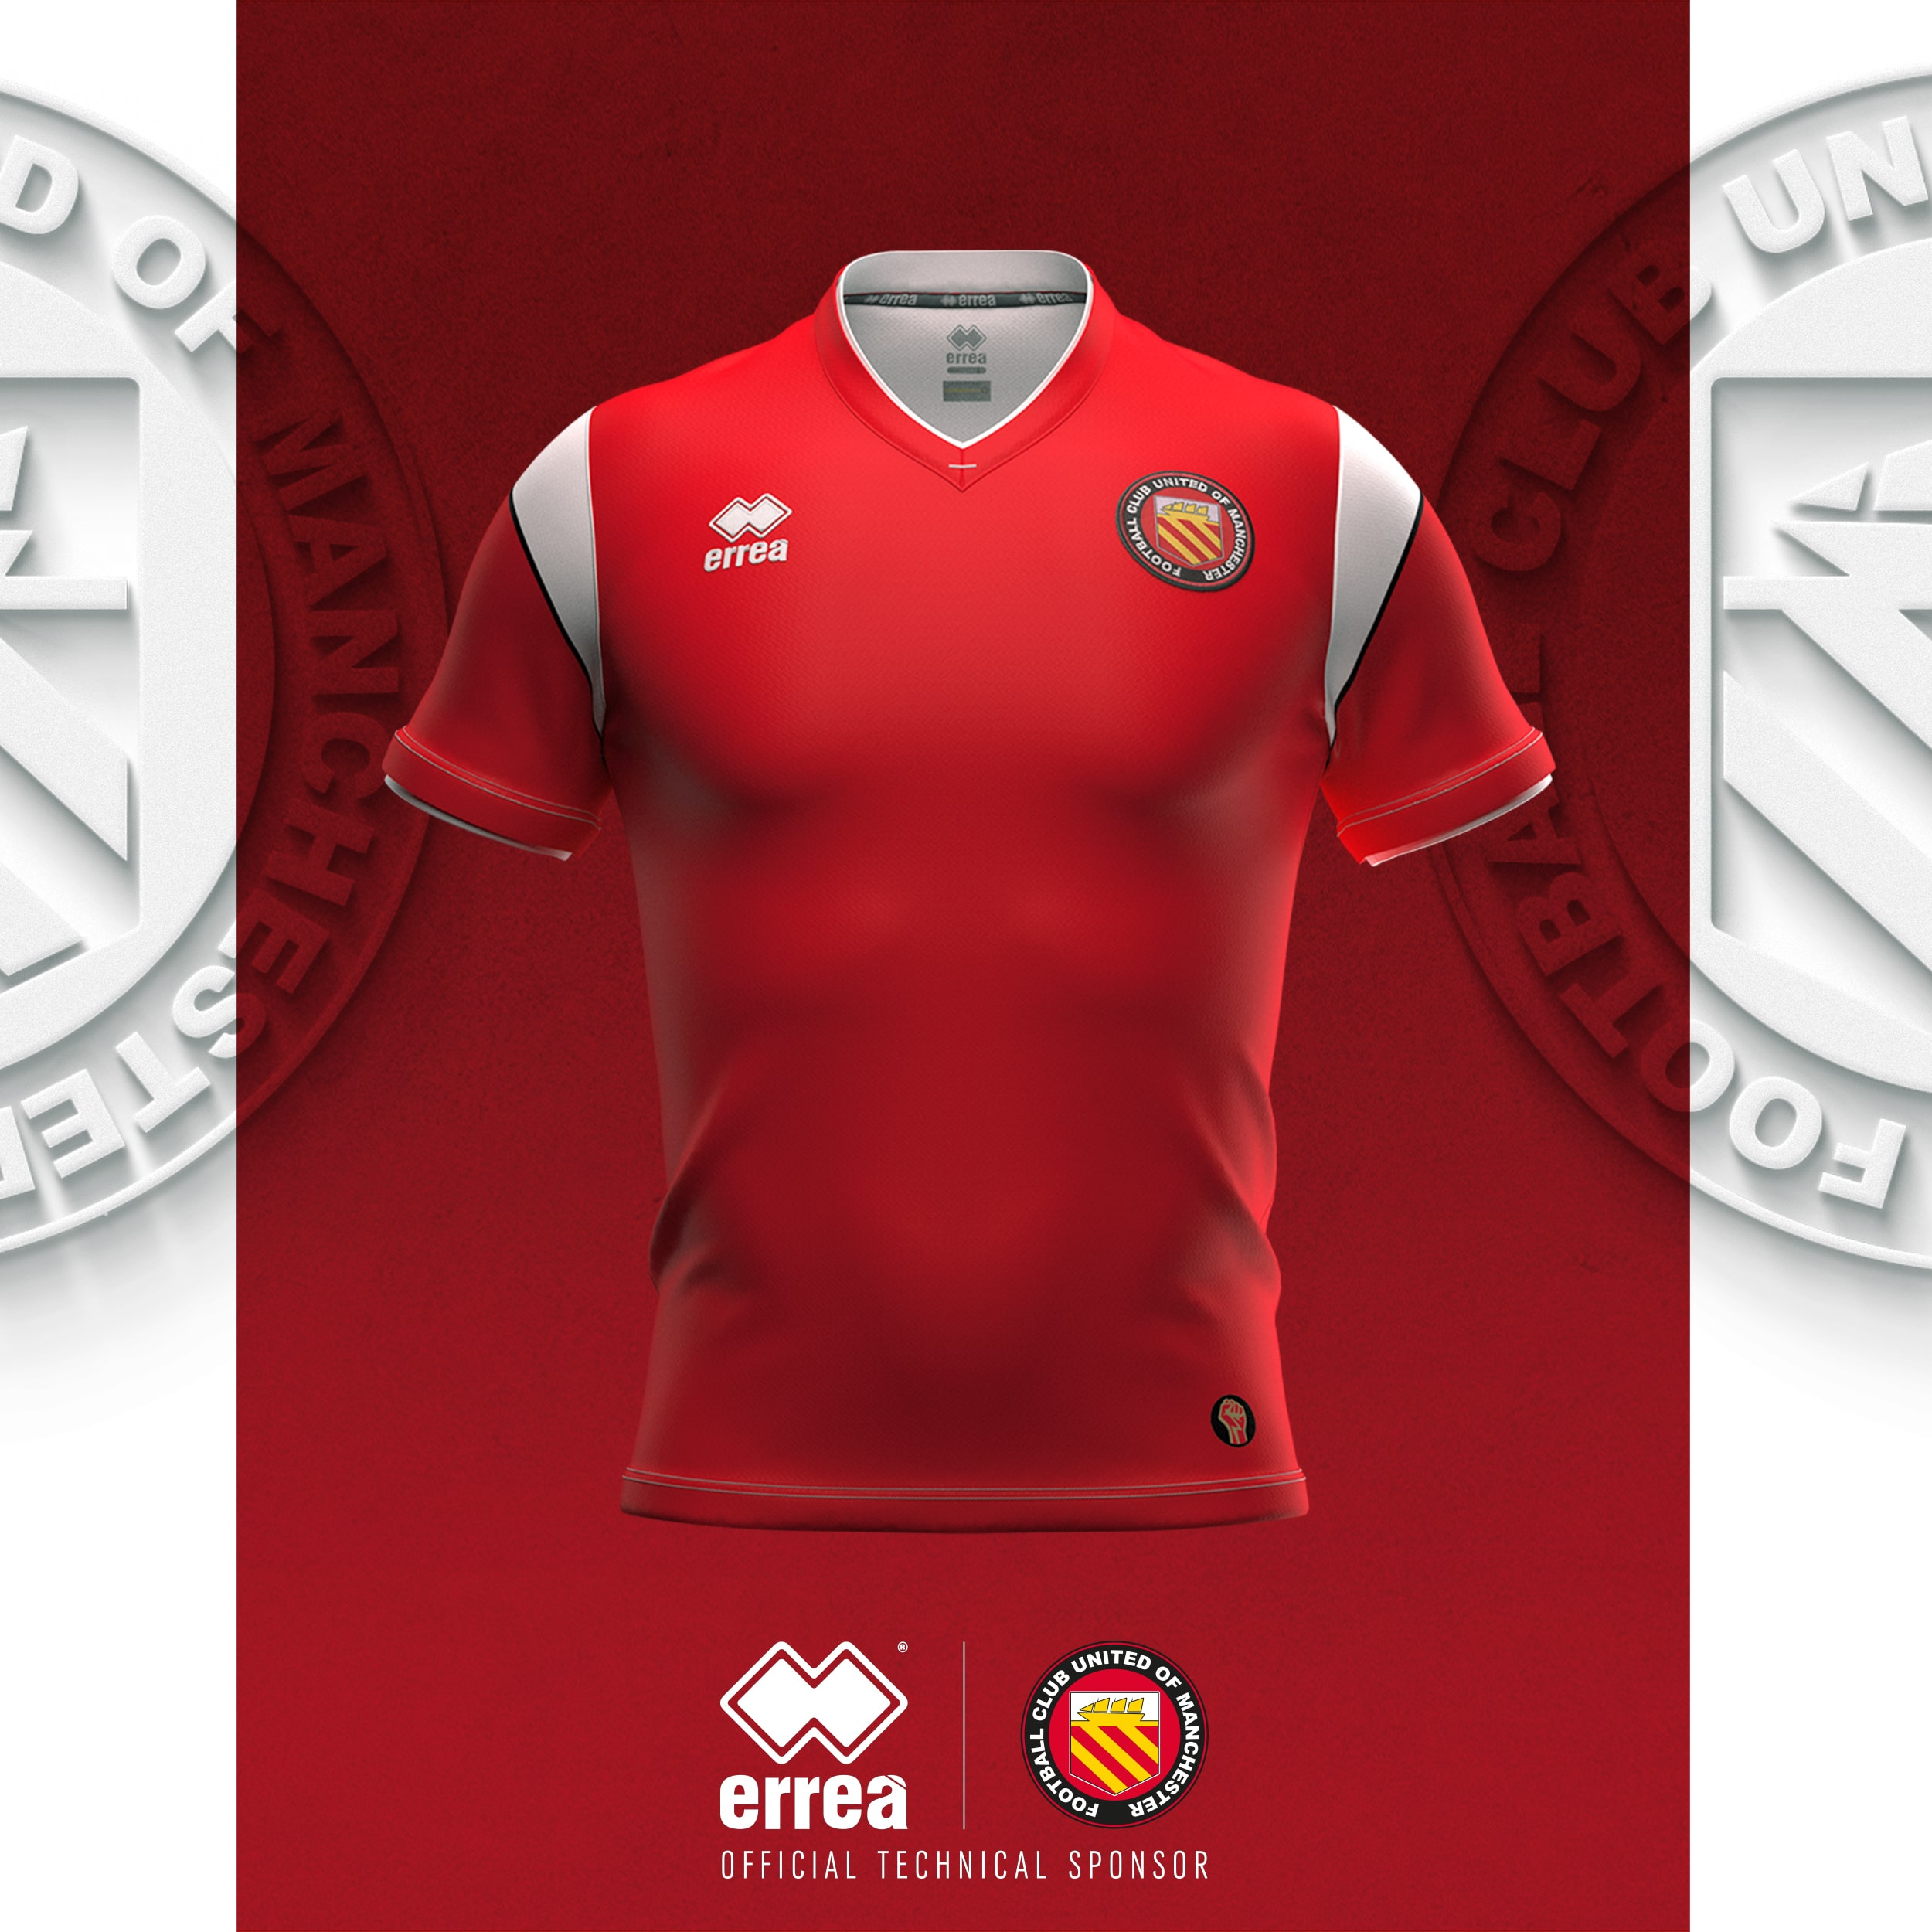 news the fans dreams come true here is the new f c united of manchester shirt for the 2020 2021 season errea news the fans dreams come true here